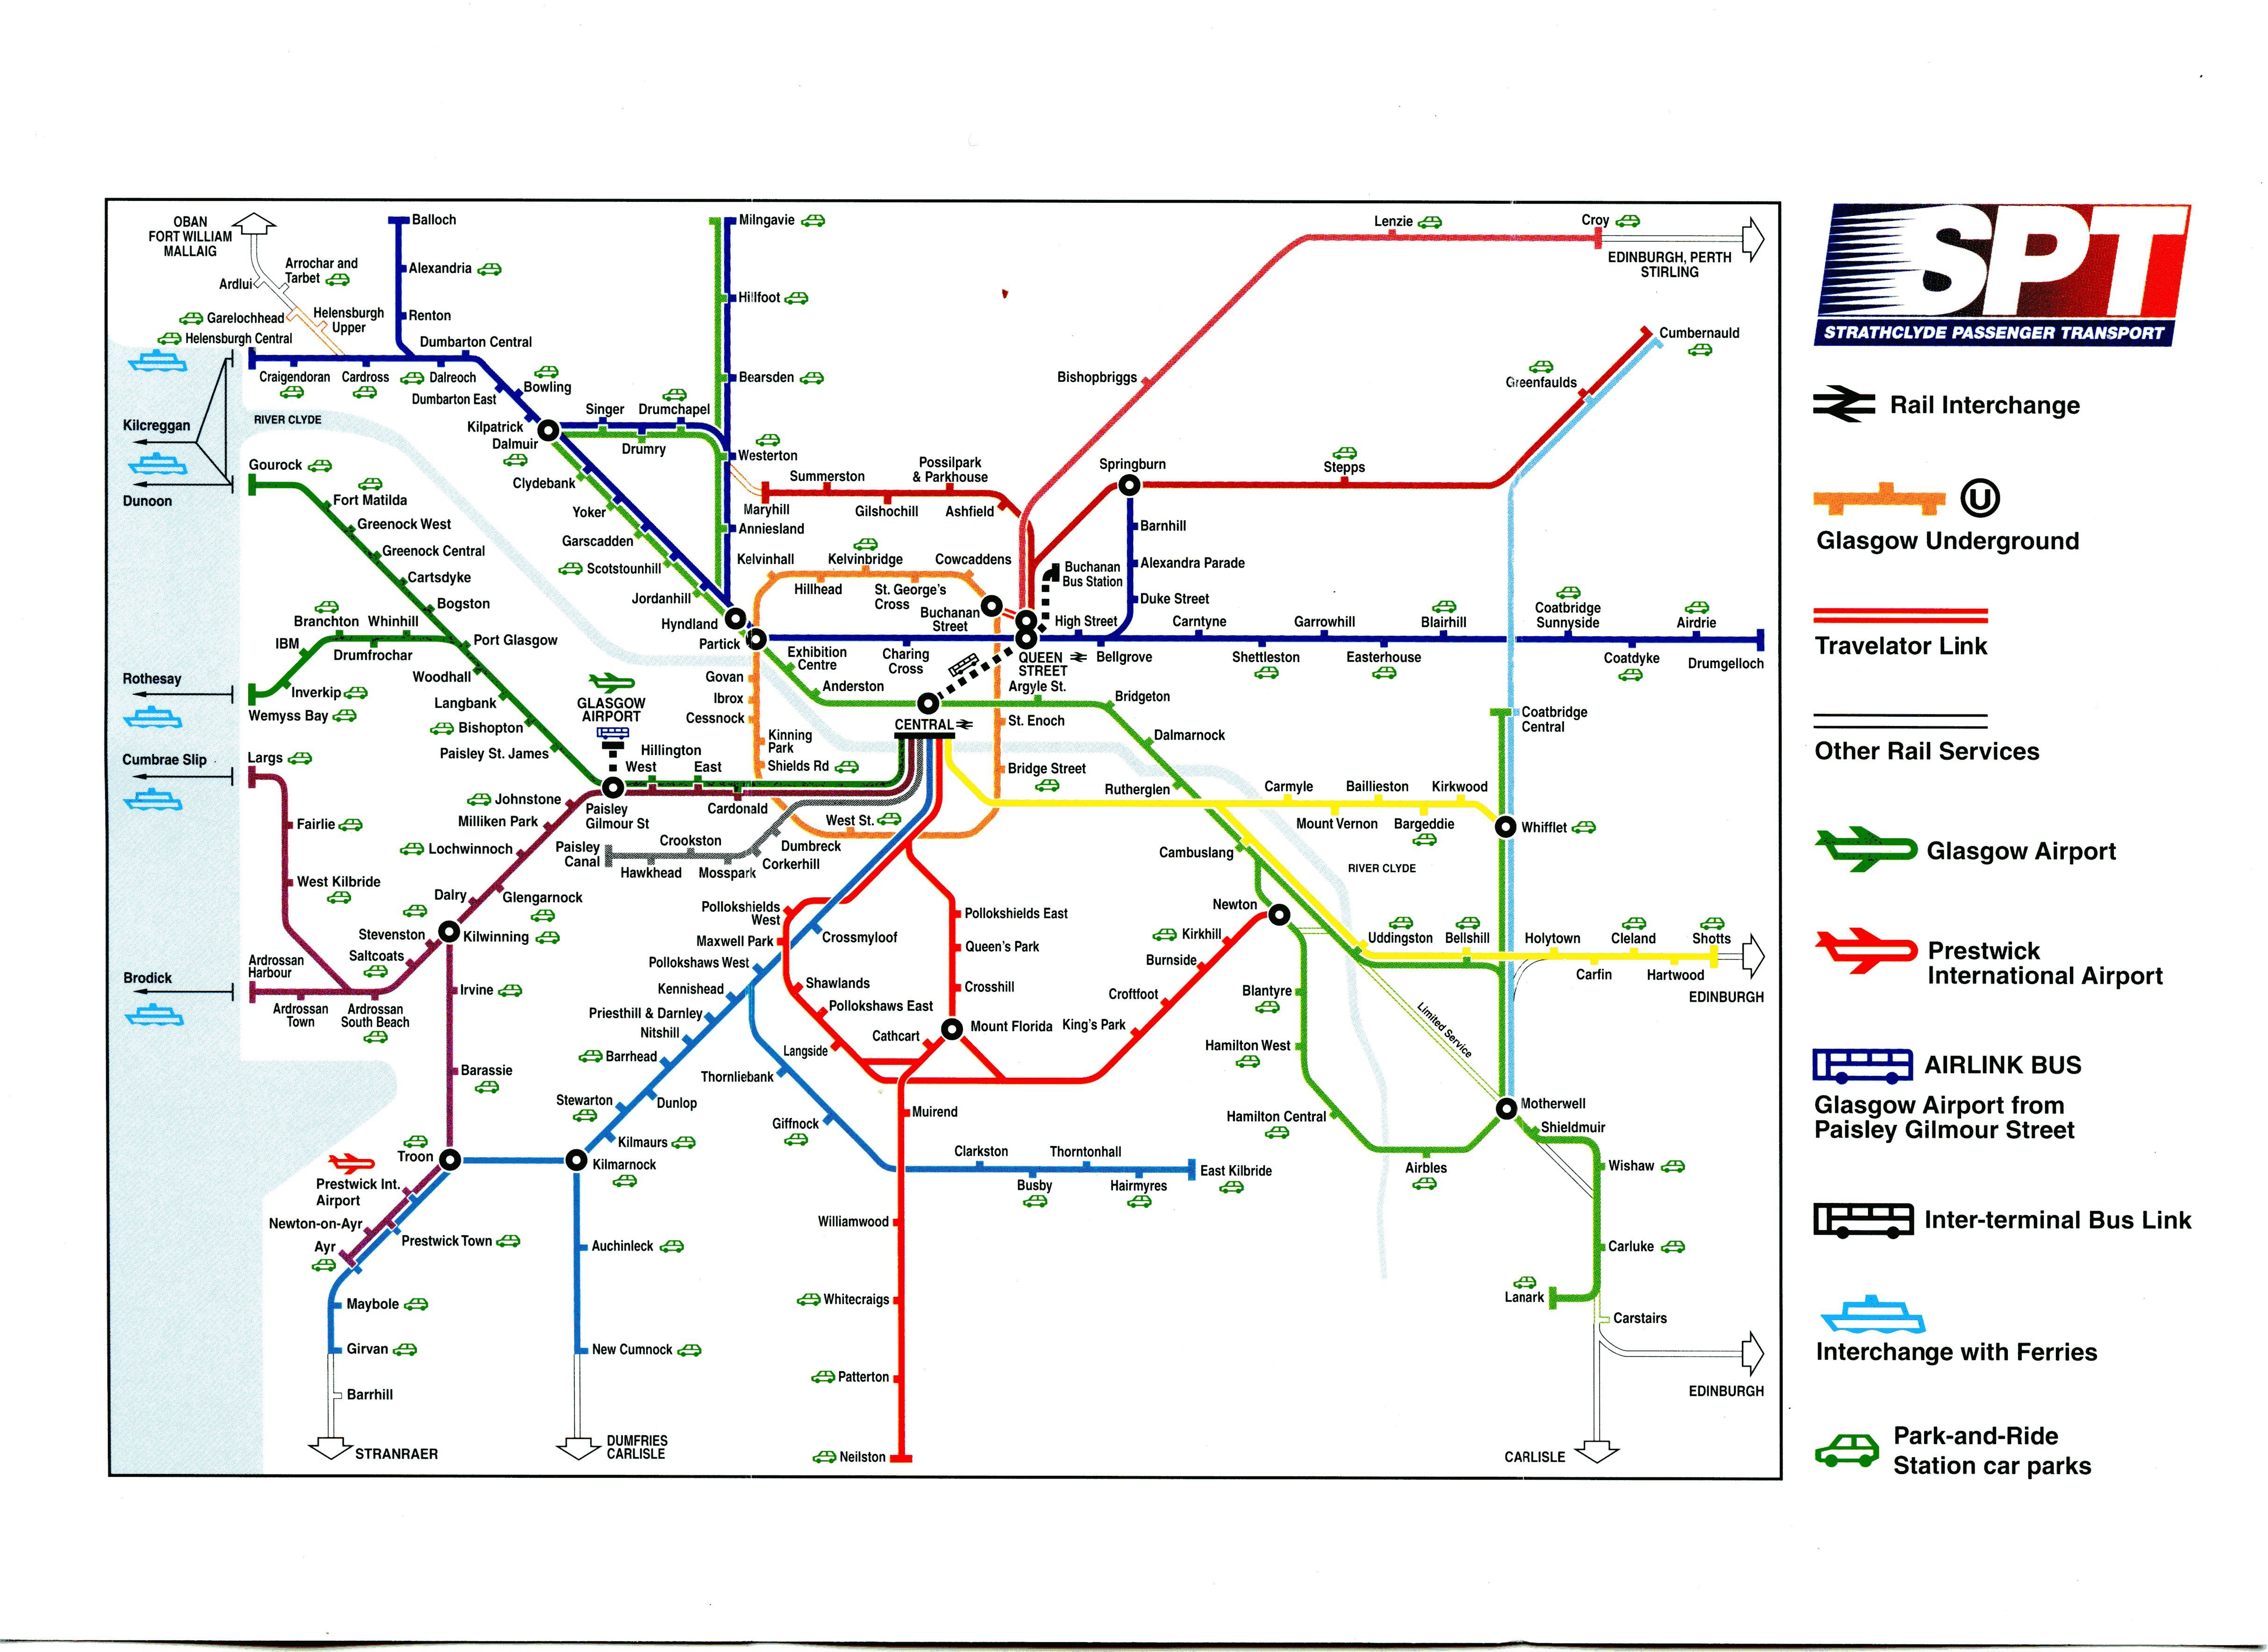 Train Routes In Scotland Map.Pin By Graeme Thomson On Railways Pinterest Scotland Map And